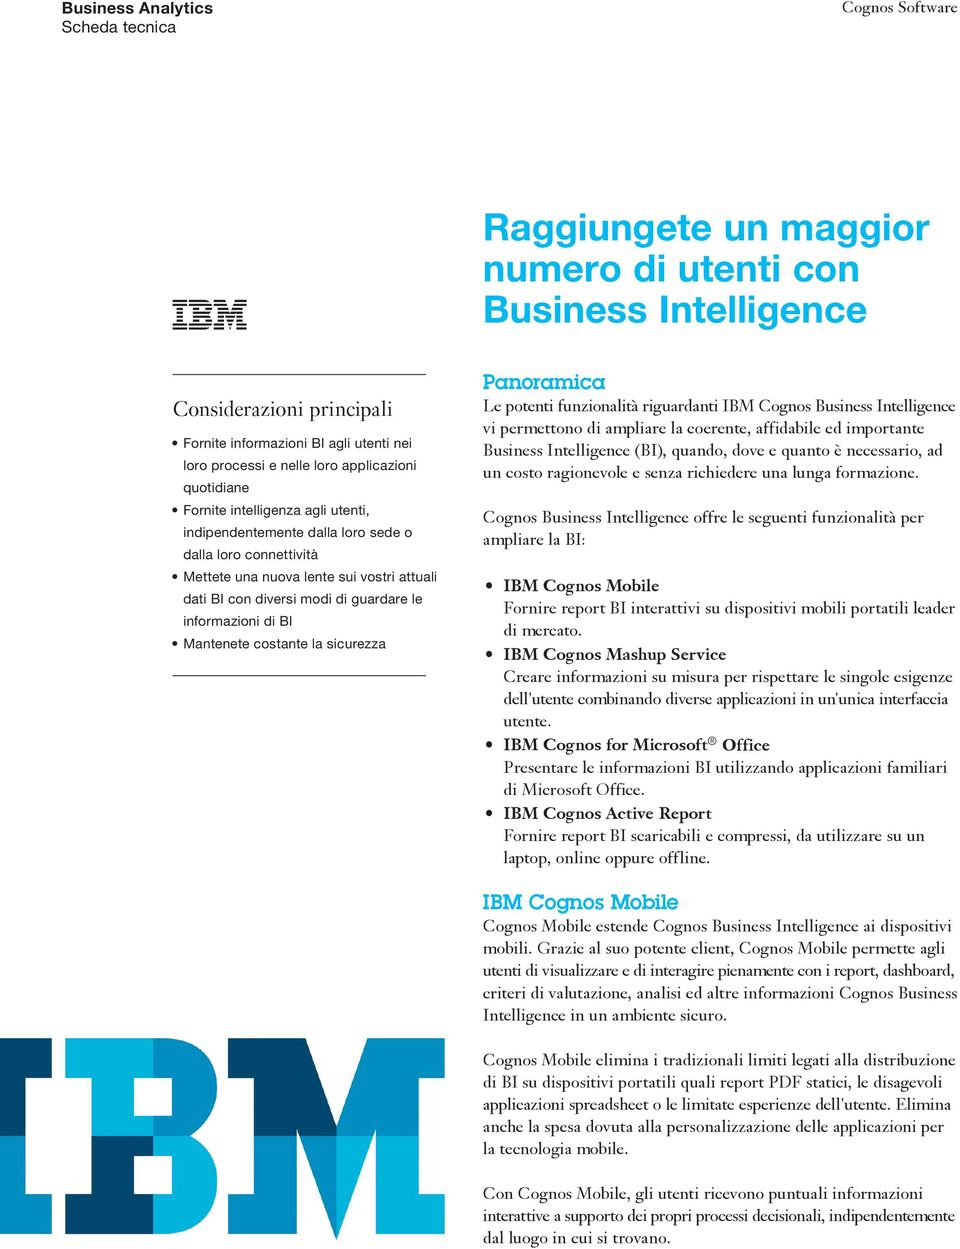 costante la sicurezza Panoramica Le potenti funzionalità riguardanti IBM Cognos Business Intelligence vi permettono di ampliare la coerente, affidabile ed importante Business Intelligence (BI),